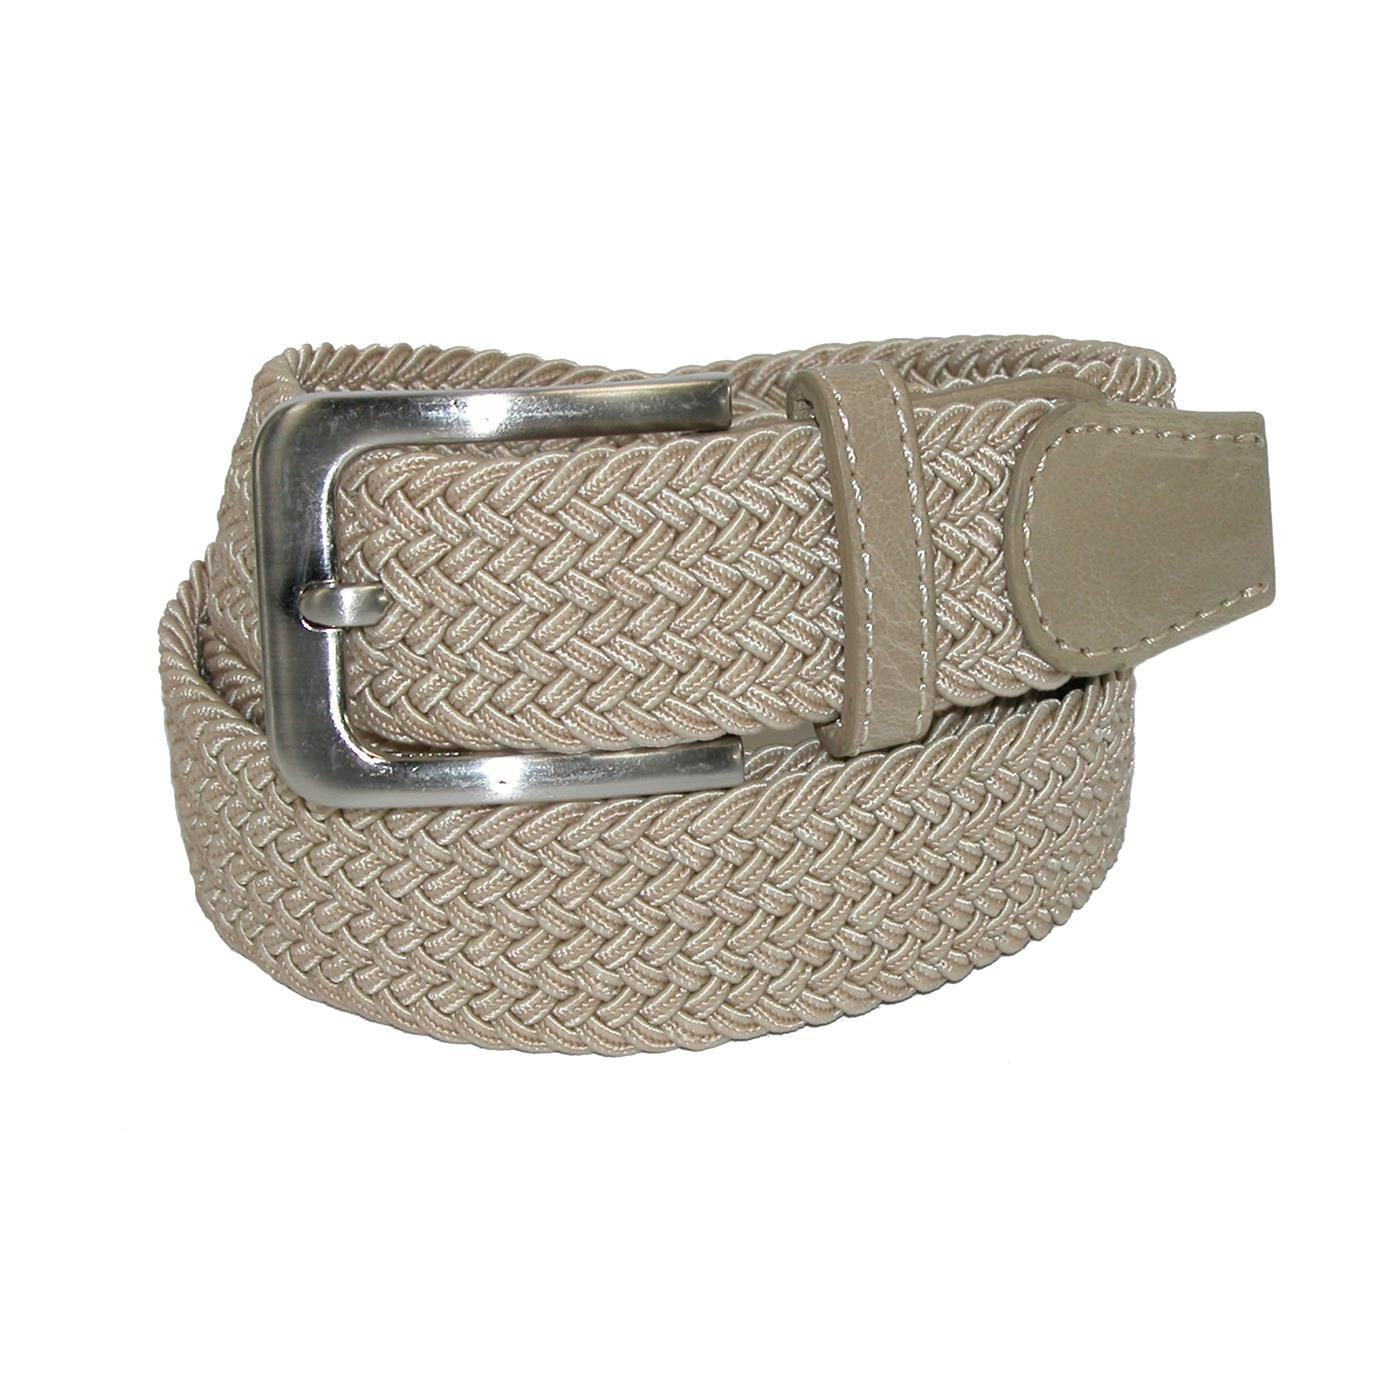 Fully adjustable, this belt provides both comfort and style. The elastic stretch allows for a comfortable fit that moves with you. An antiqued nickel buckle and leather tabs create a sharp look that is great for any outfit. A classic woven belt.